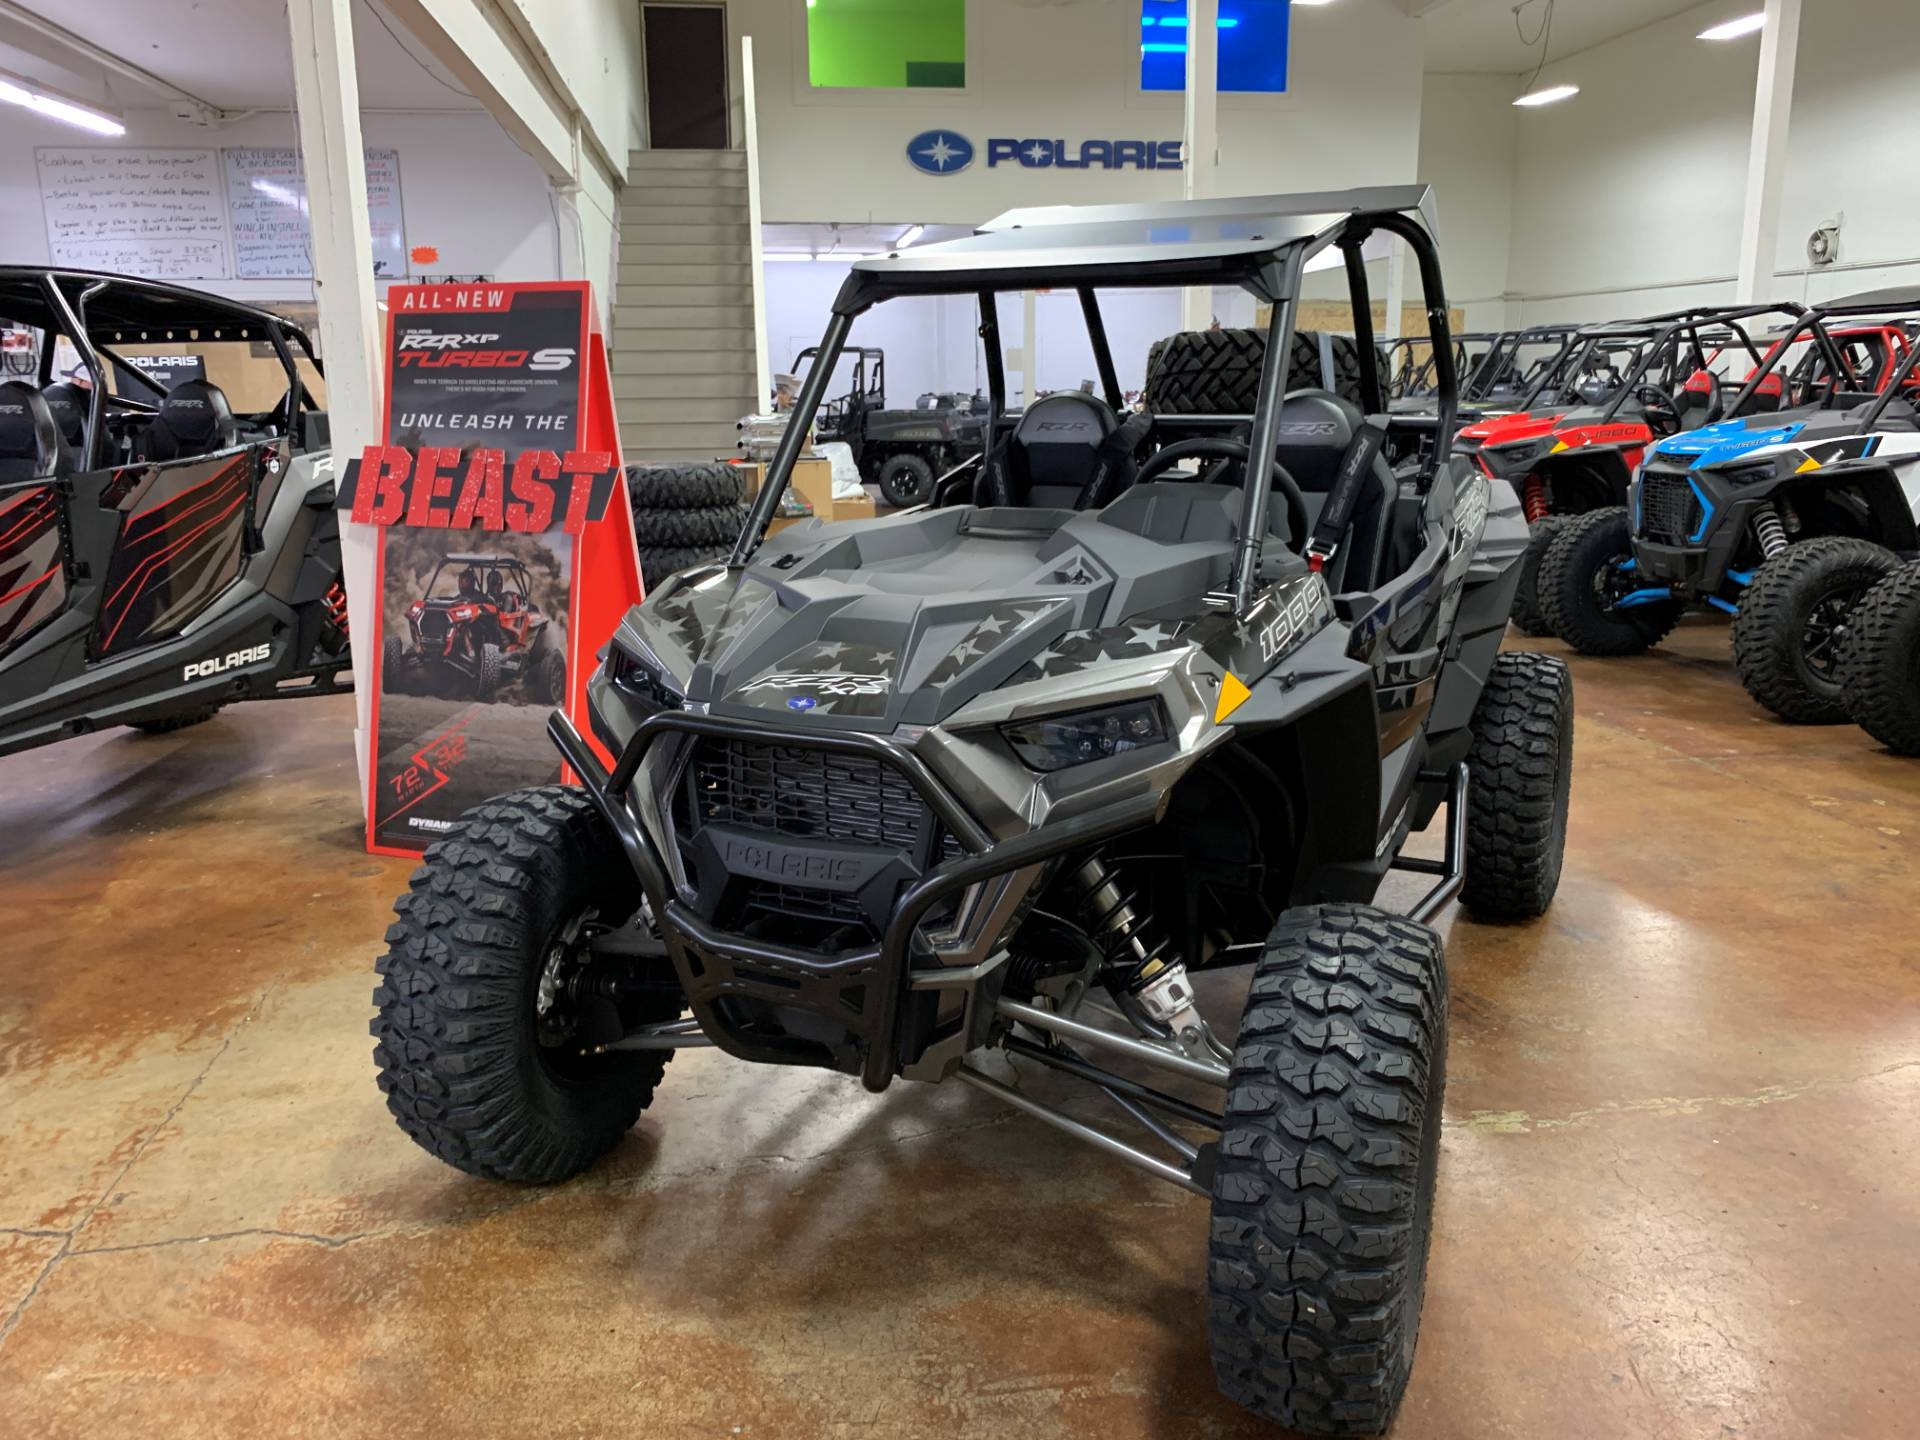 2020 Polaris RZR XP 1000 LE in Tualatin, Oregon - Photo 1